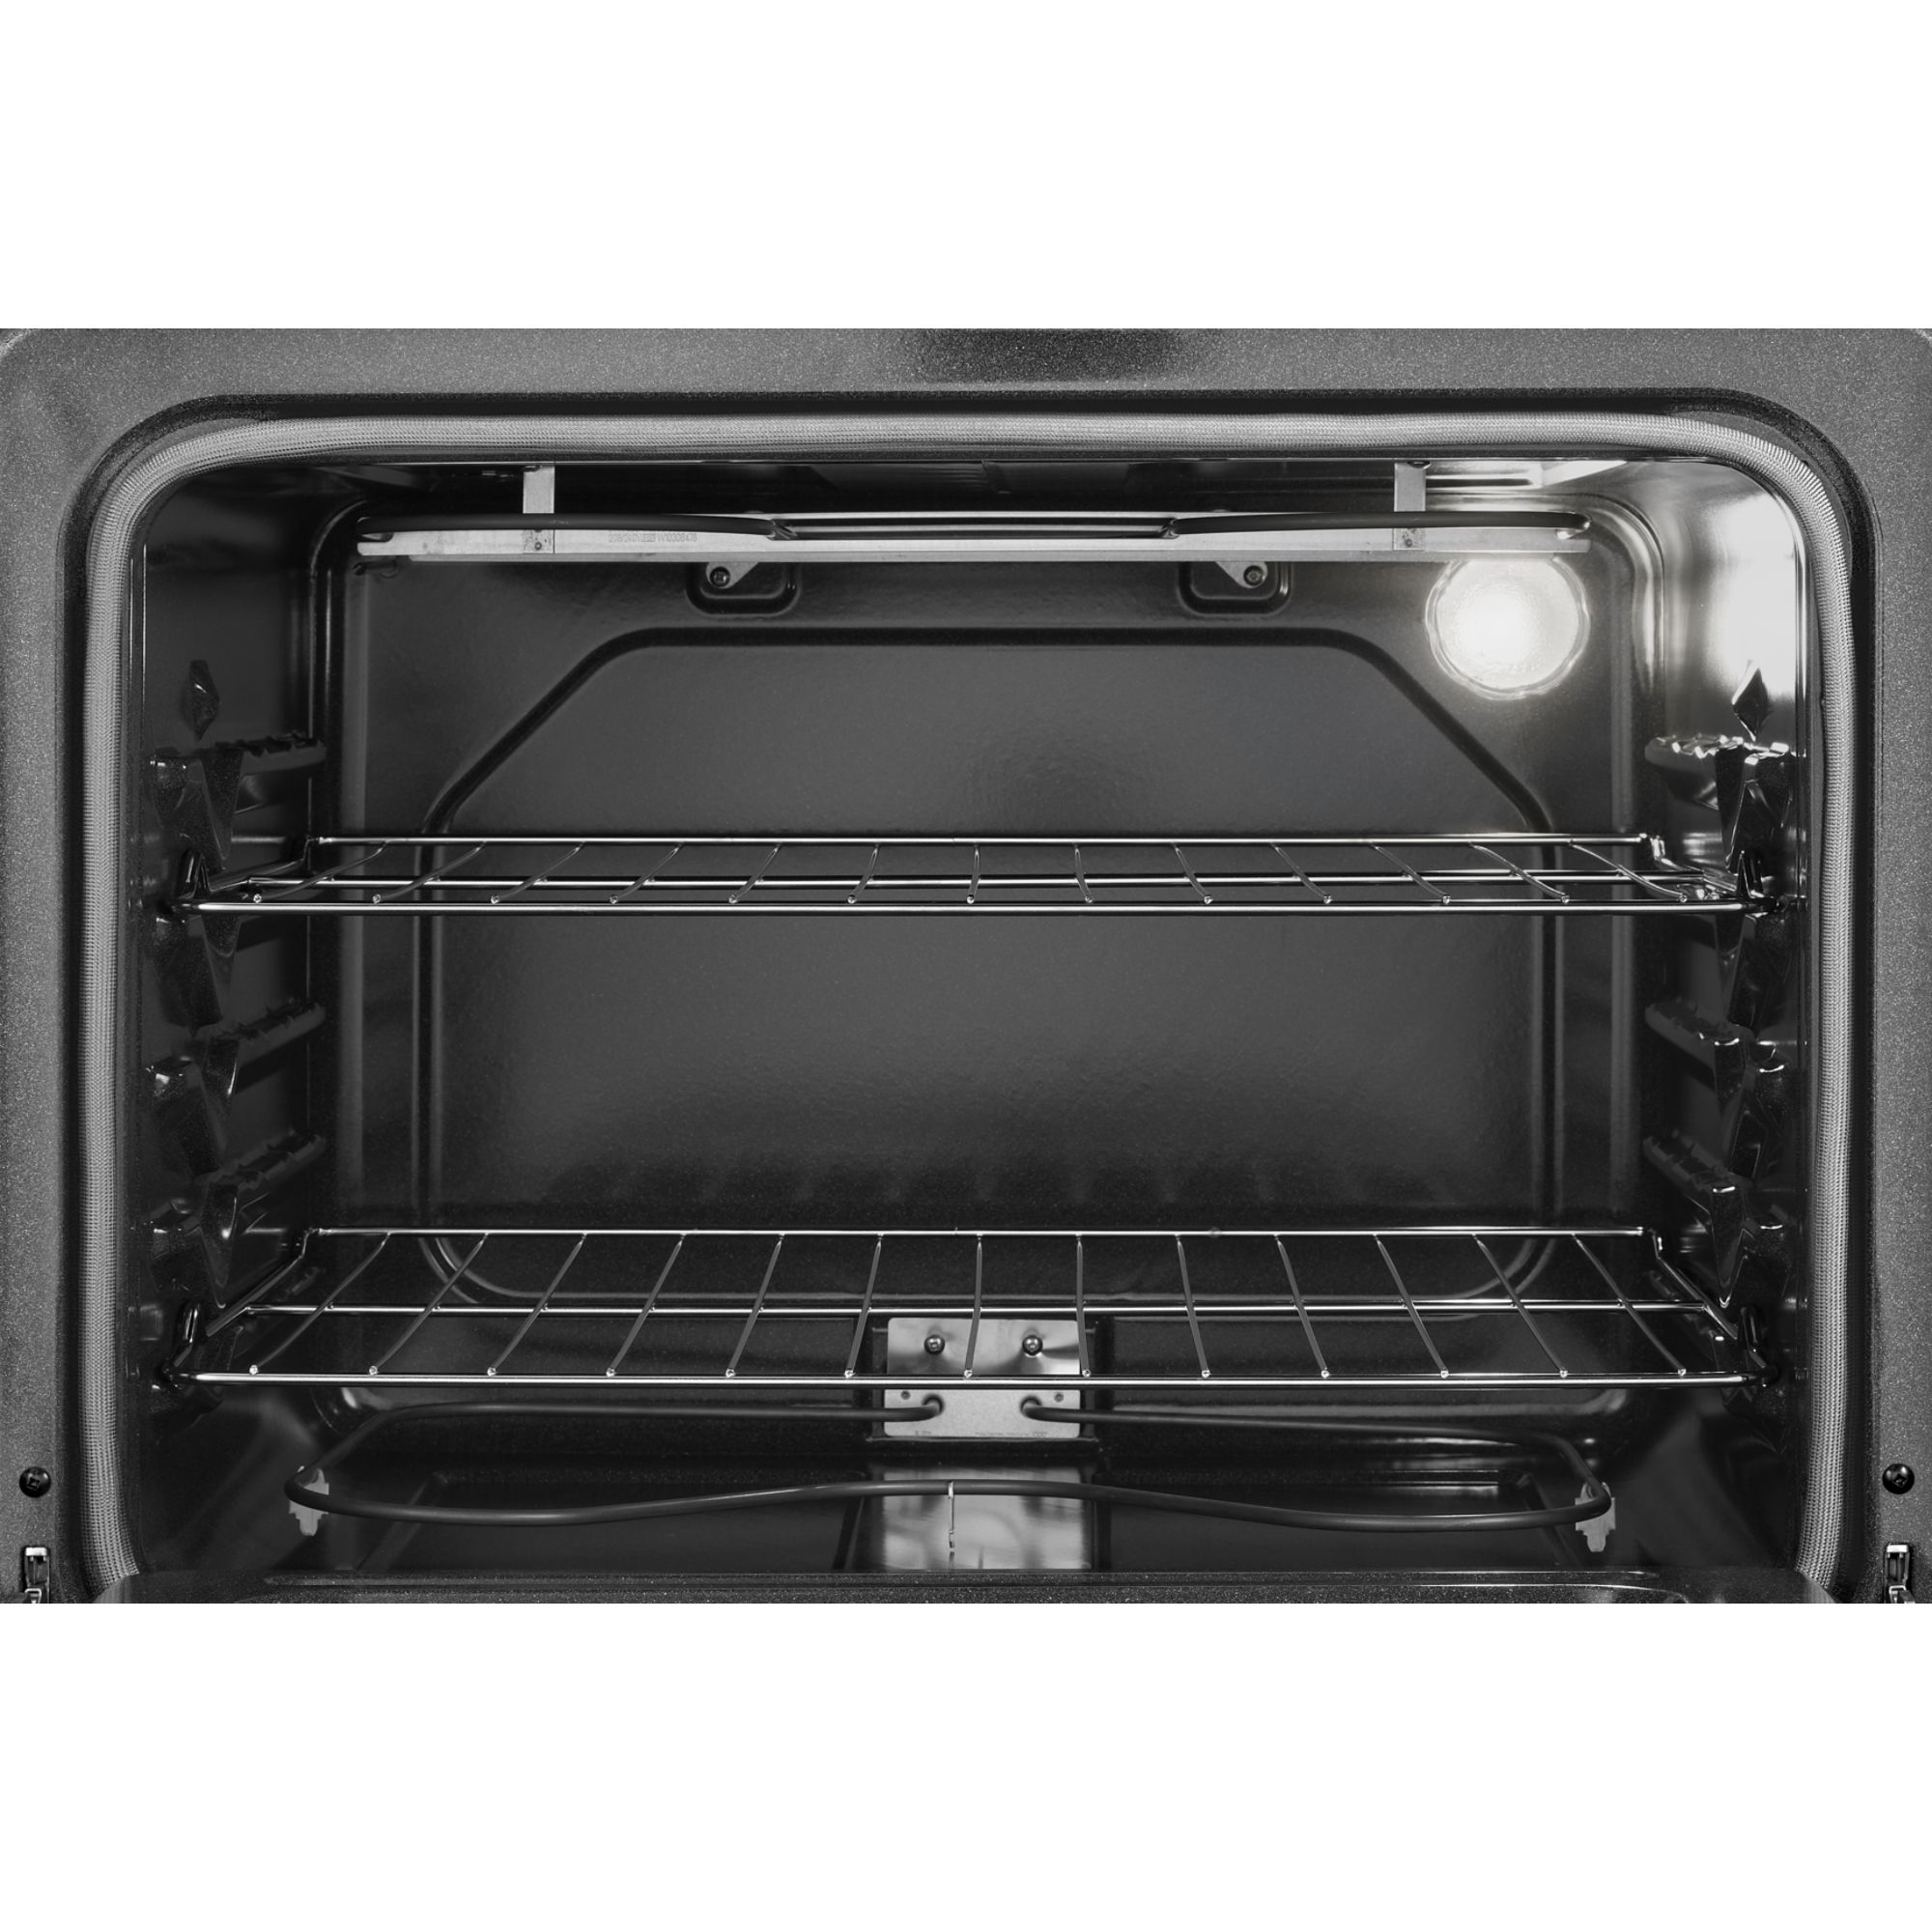 Whirlpool 4.8 cu. ft. Electric Range White